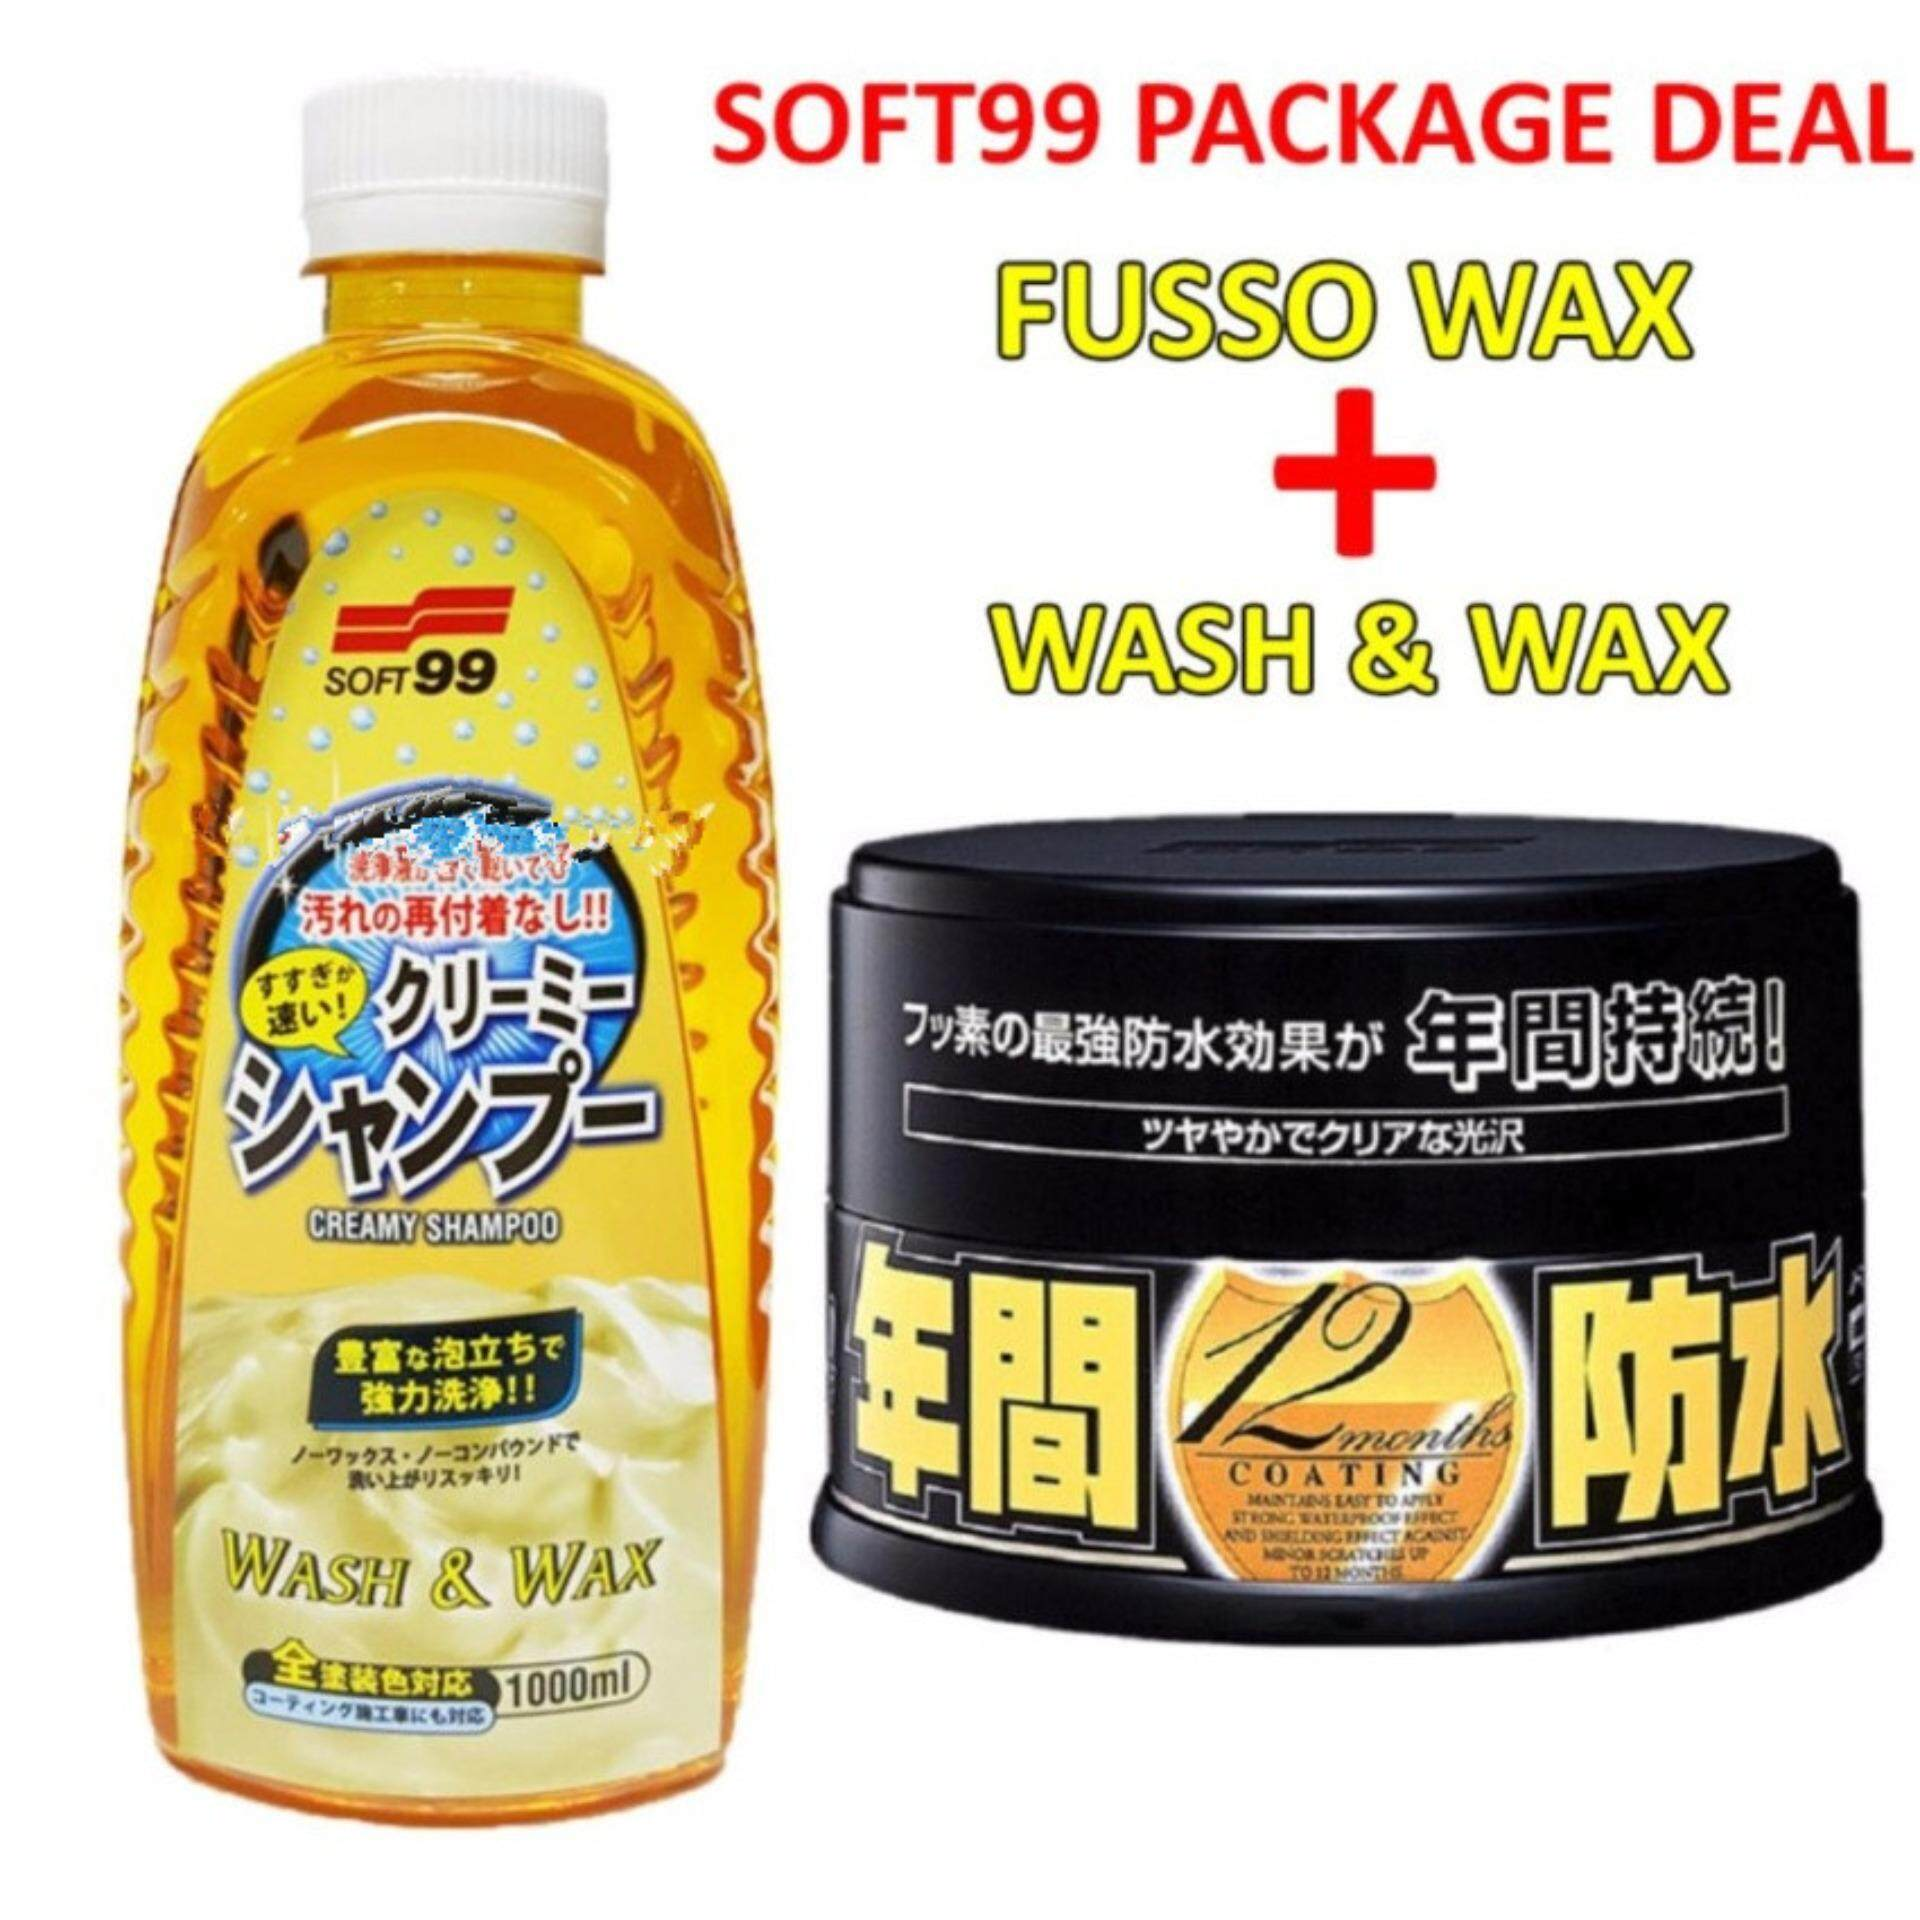 [PACKAGE DEAL] Soft 99 Fusso Coat 12 Months Dark Color Wax + Wash and Wax Car Creamy Shampoo (1000ML)